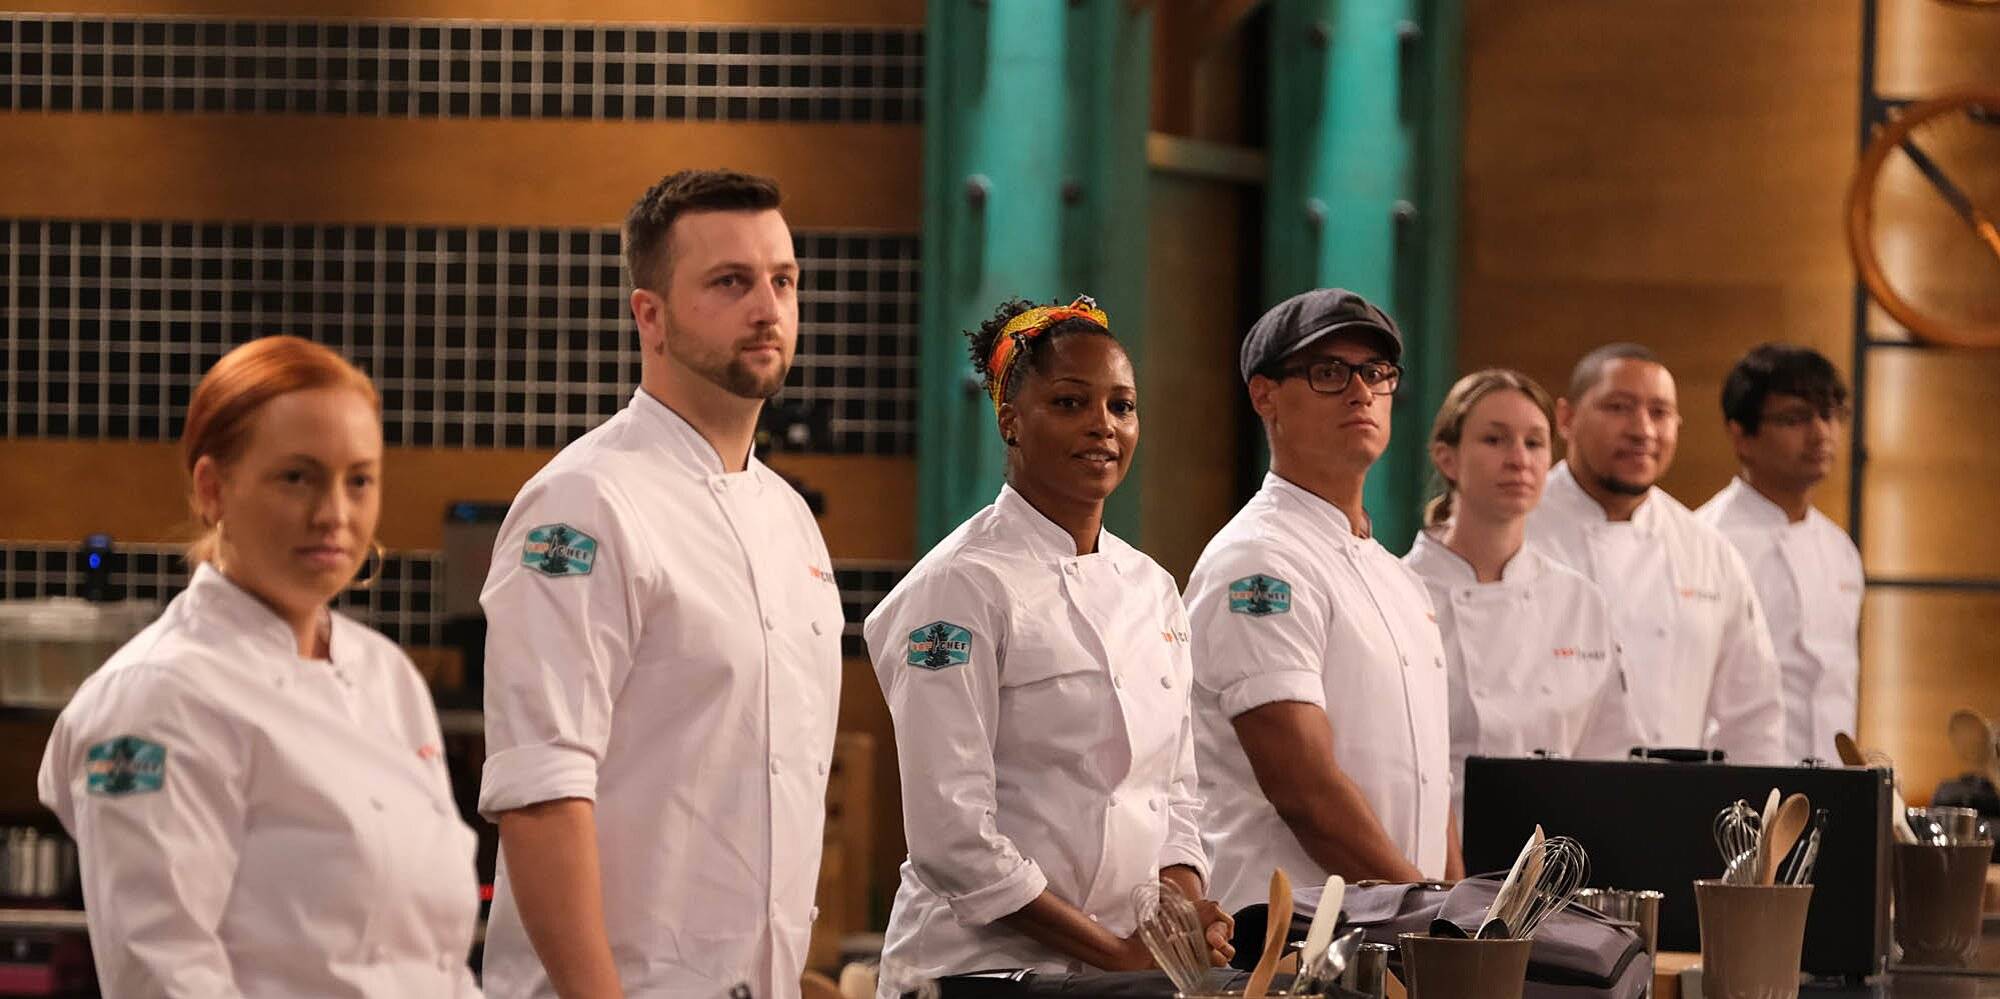 Here Are All the Chefs Competing on 'Top Chef' Season 18 in Portland - Food & Wine